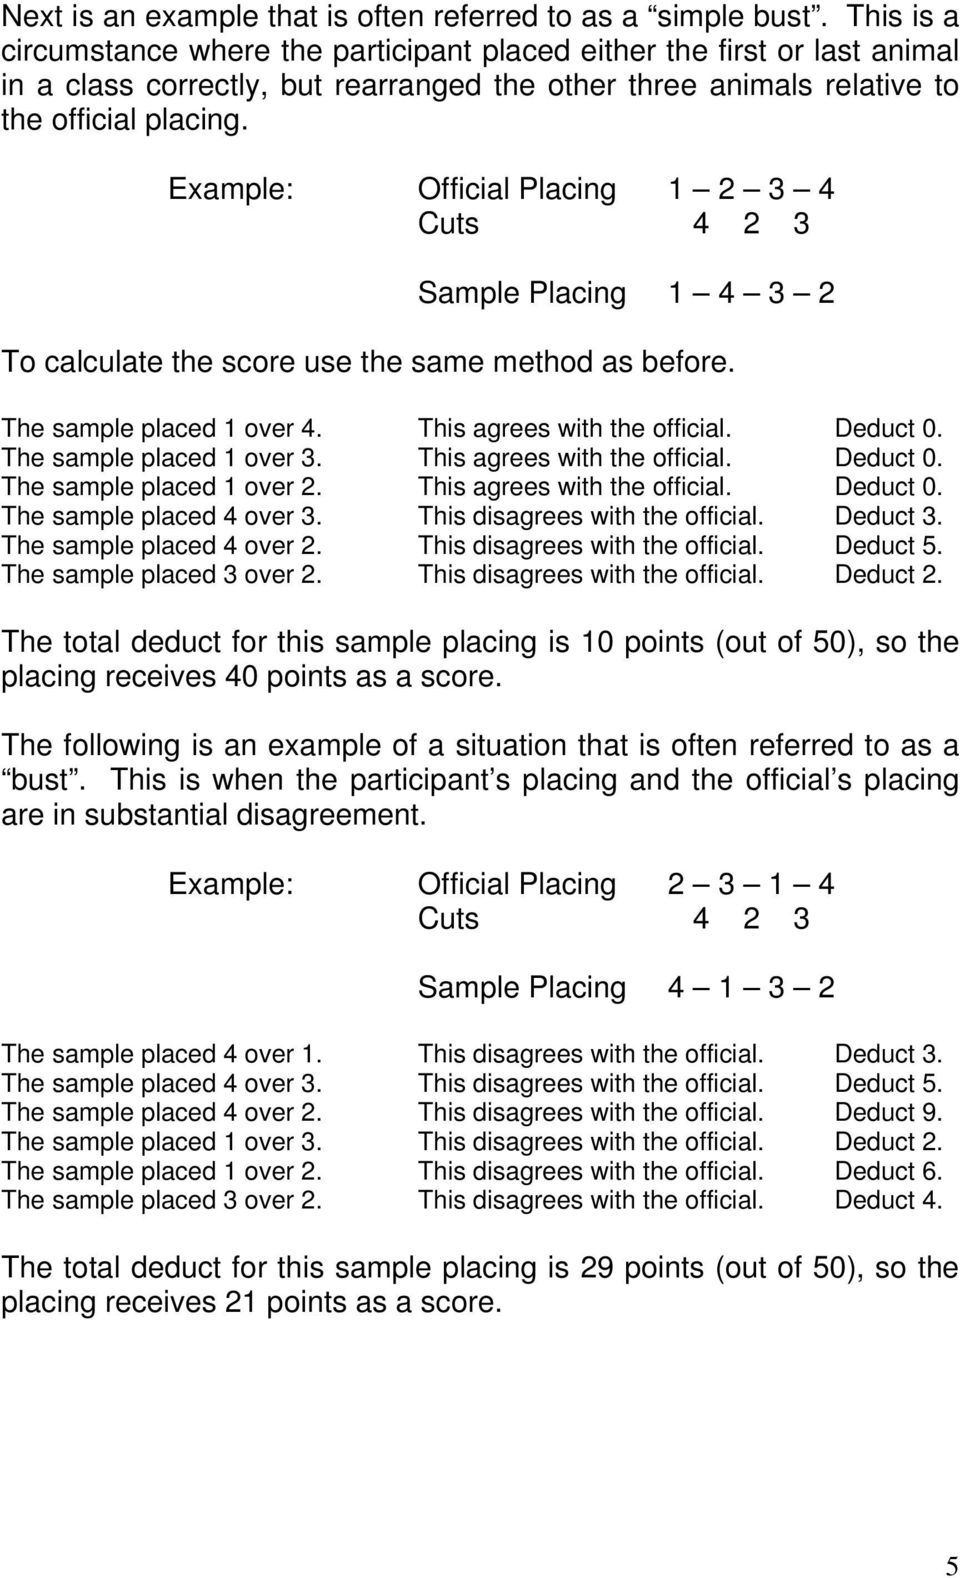 Example: Official Placing 1 2 3 4 Cuts 4 2 3 Sample Placing 1 4 3 2 To calculate the score use the same method as before. The sample placed 1 over 4. This agrees with the official. Deduct 0.